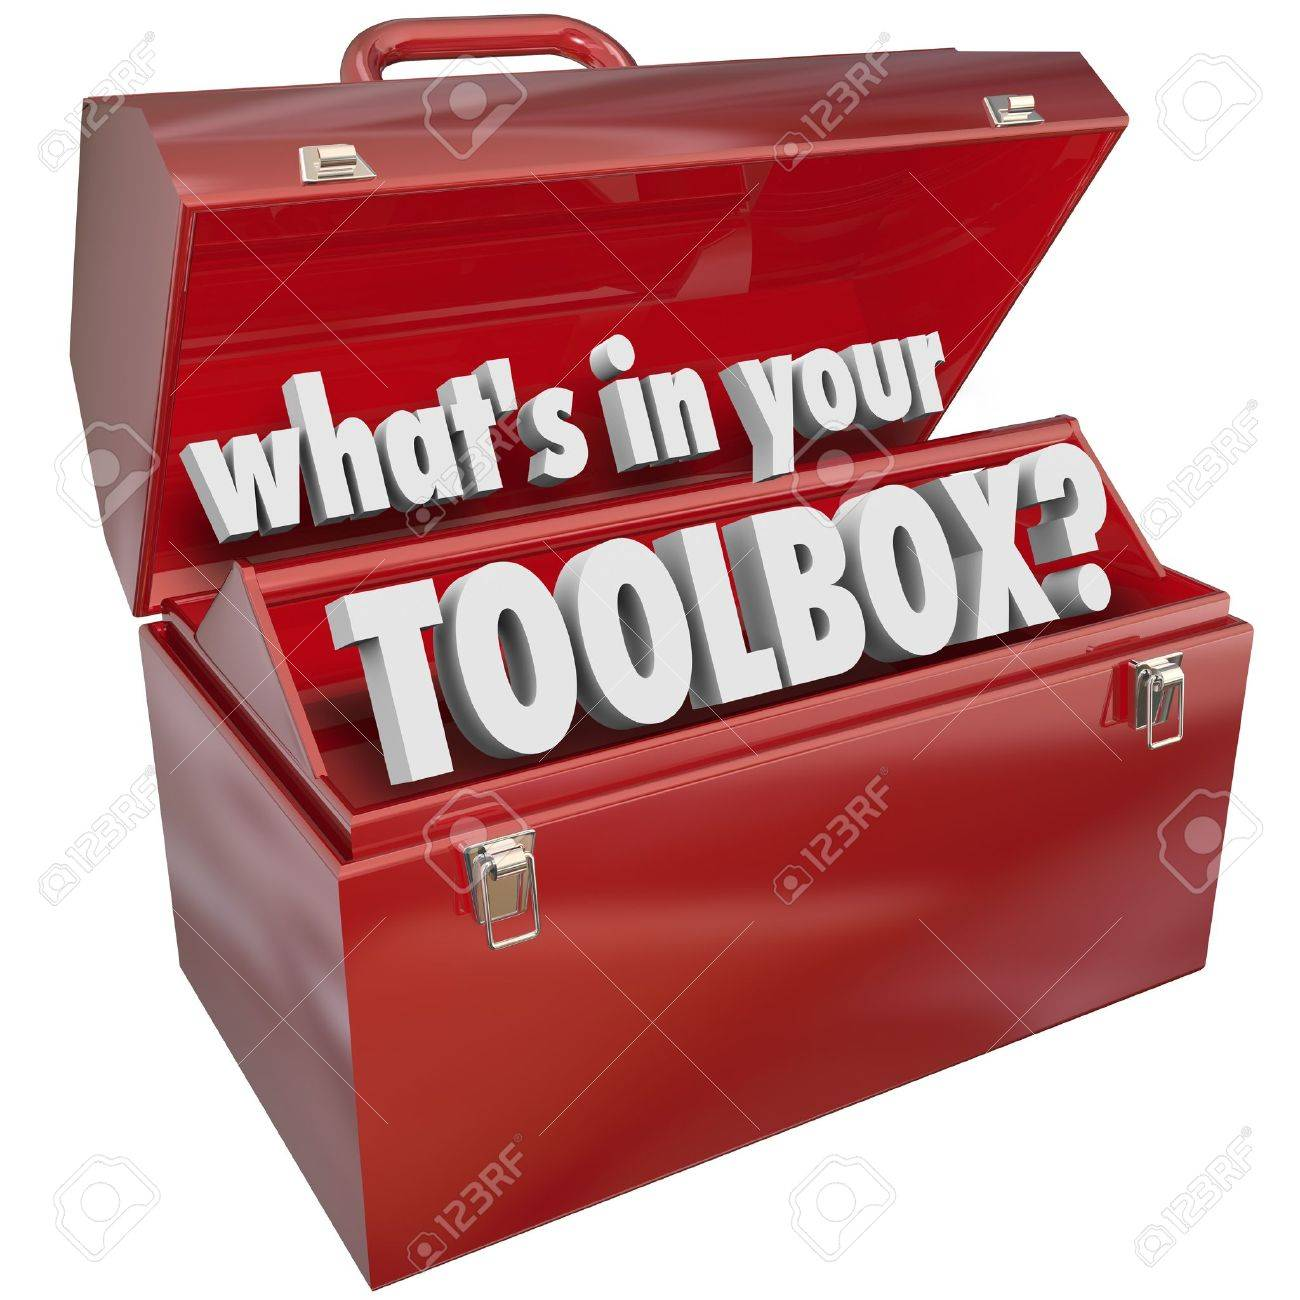 The question What's in Your Toolbox? asking if you have the skills and experience necessary to perform a task or job - 21642421